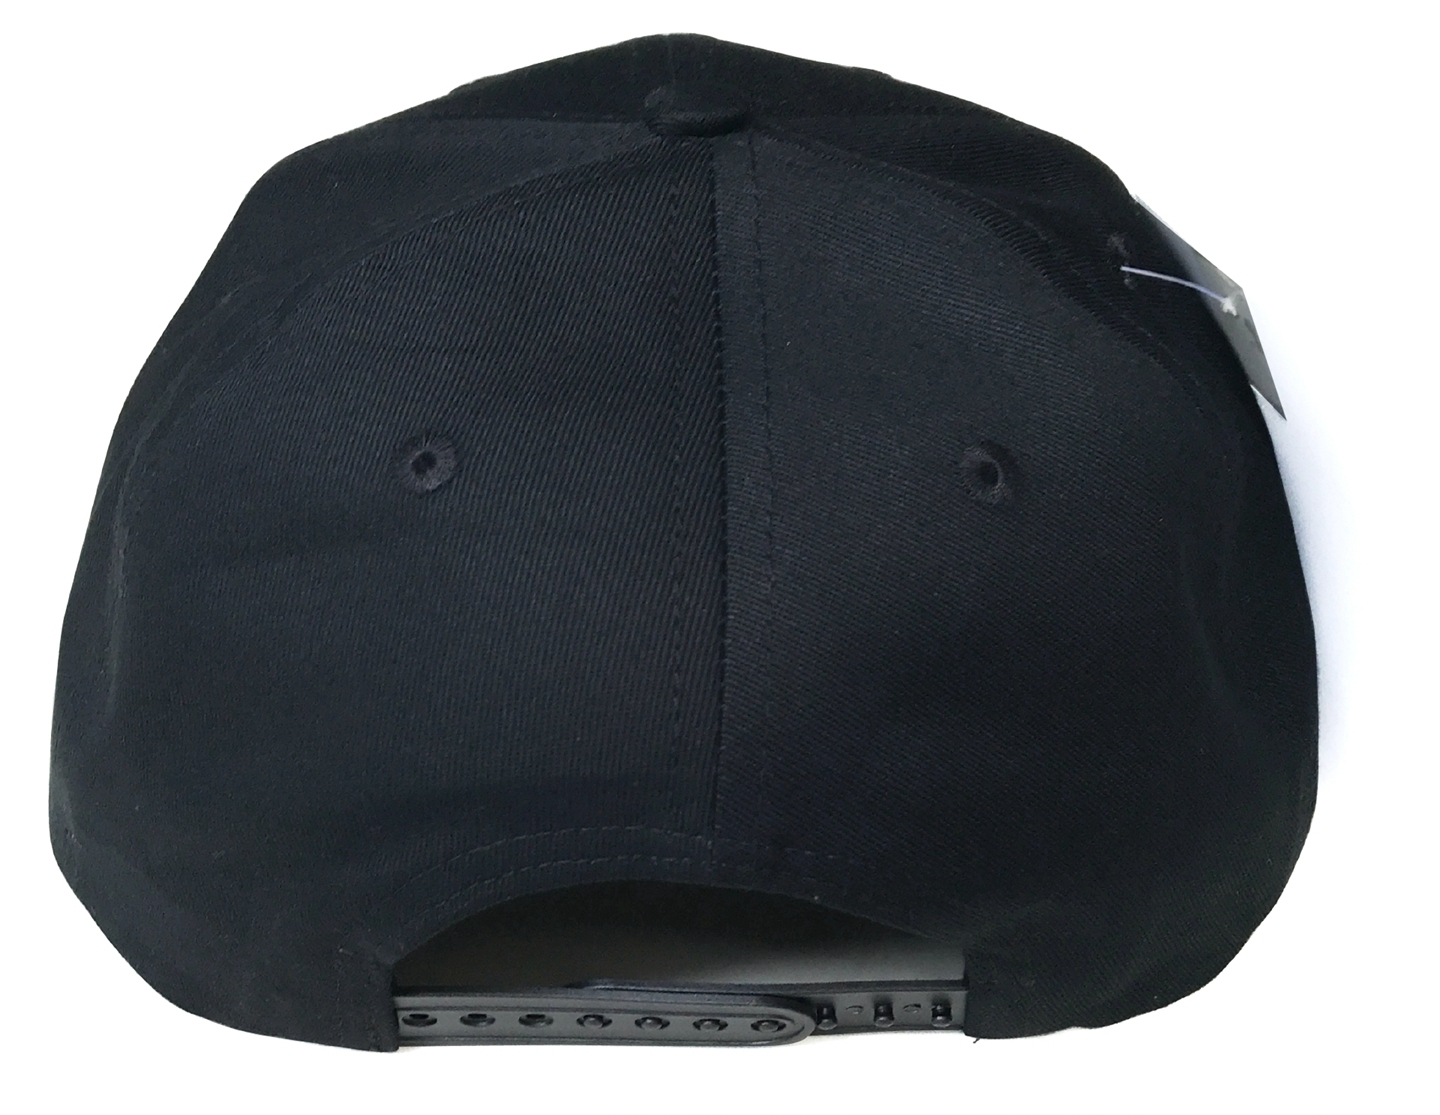 Custom Black cotton materail baseball cap